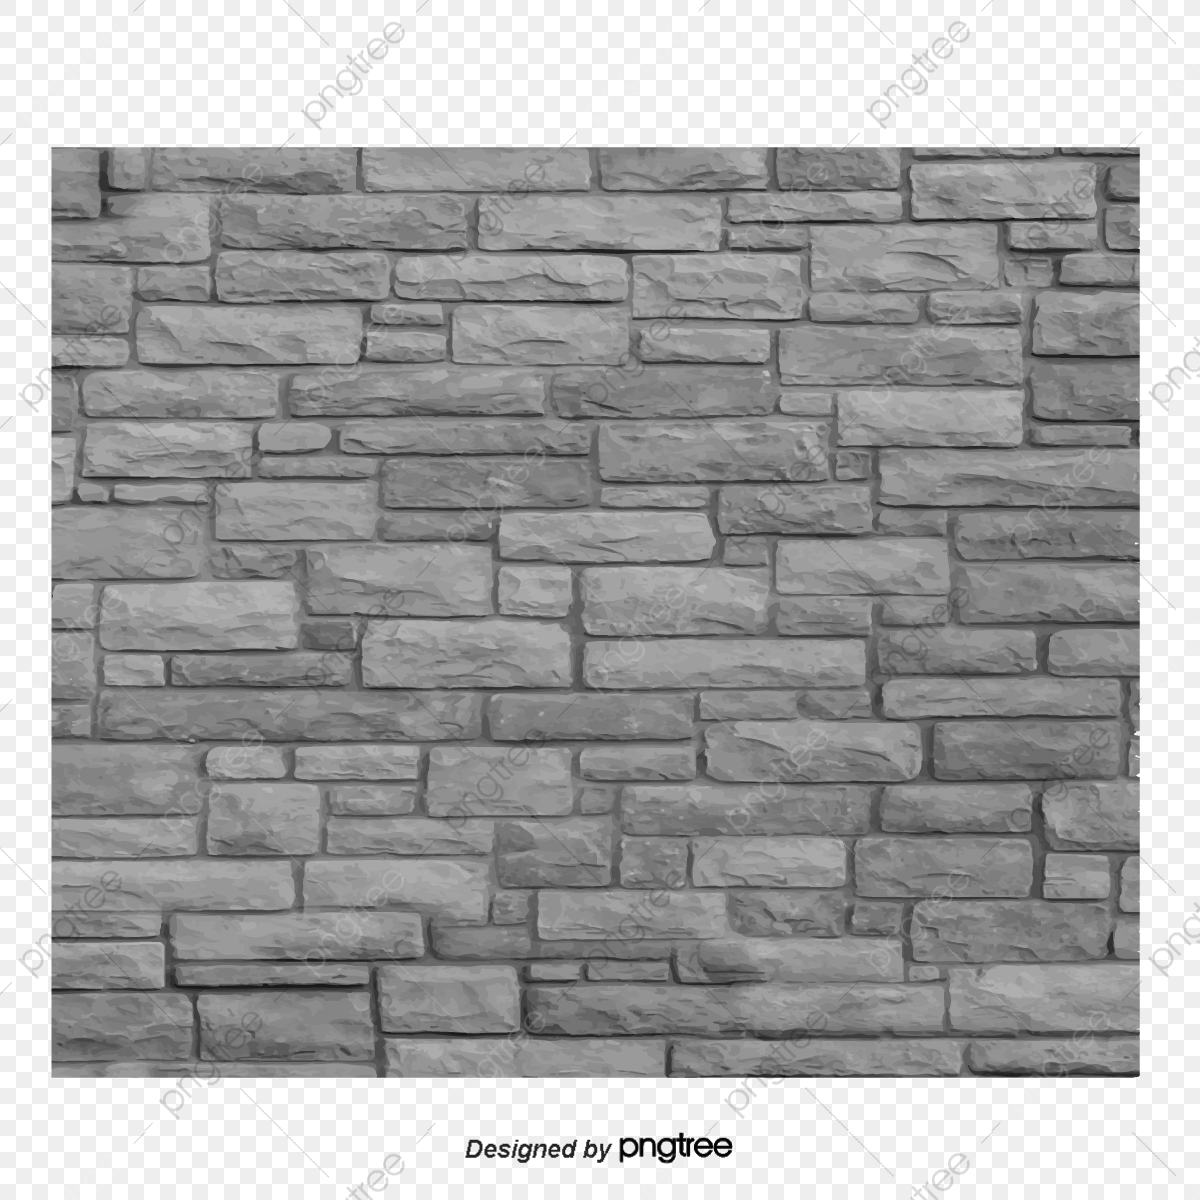 Black Brick Wall Background Black Brick Wall Background Png And